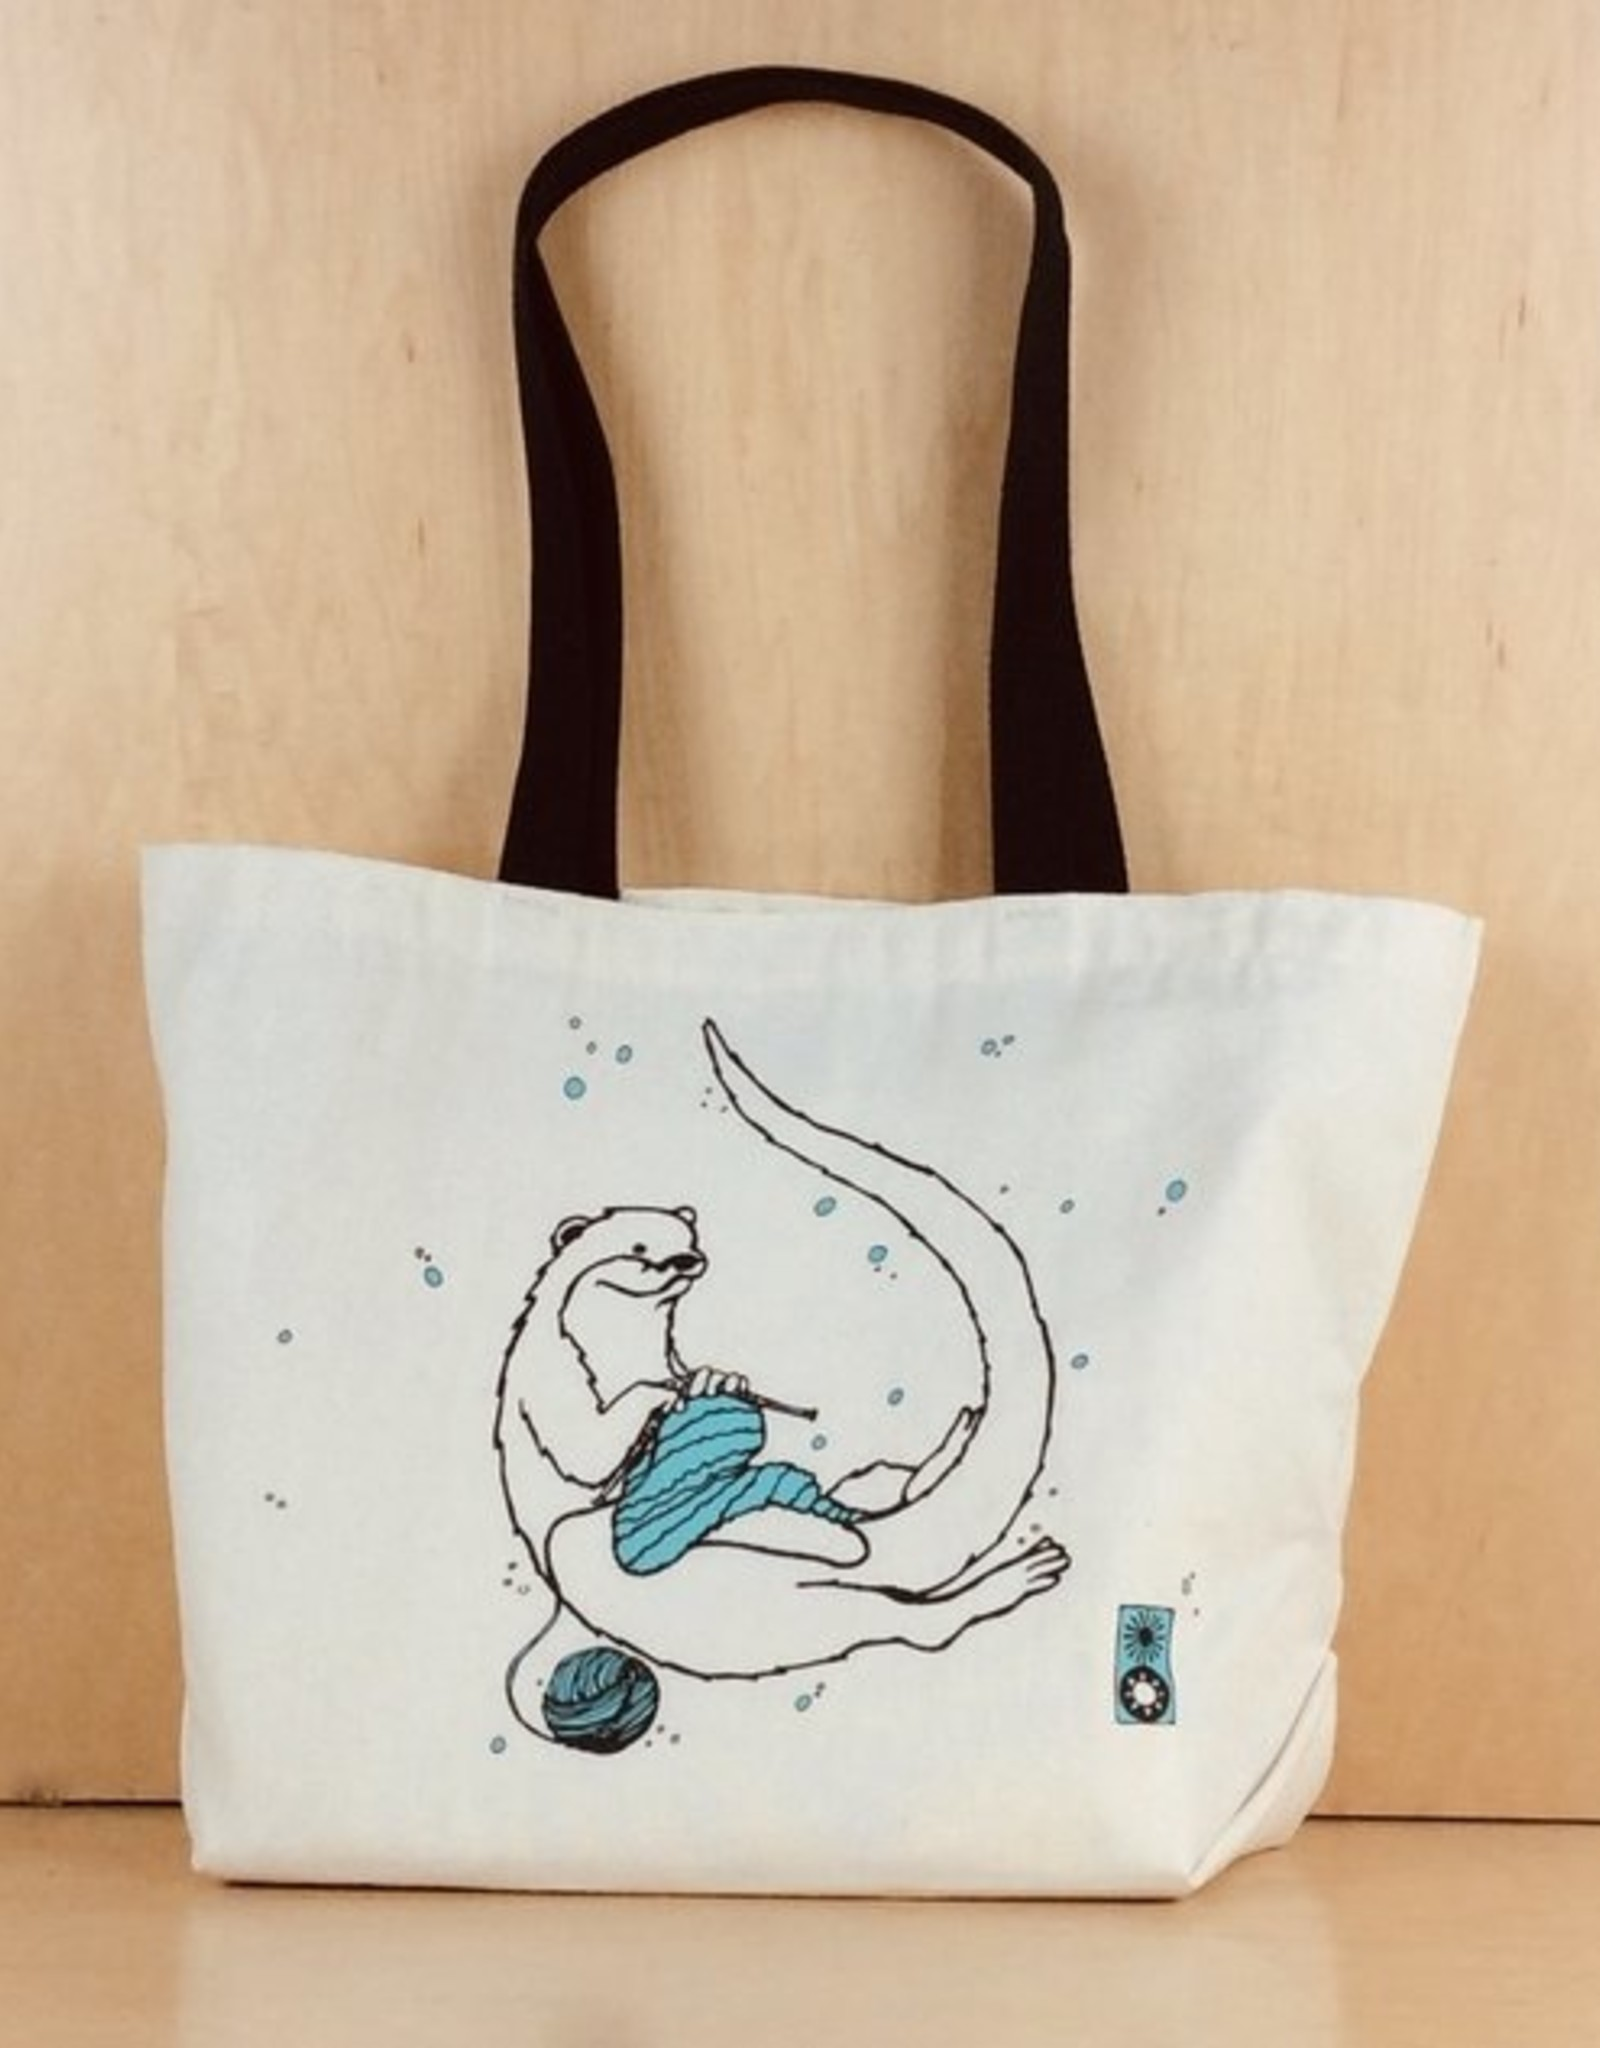 Project Tote